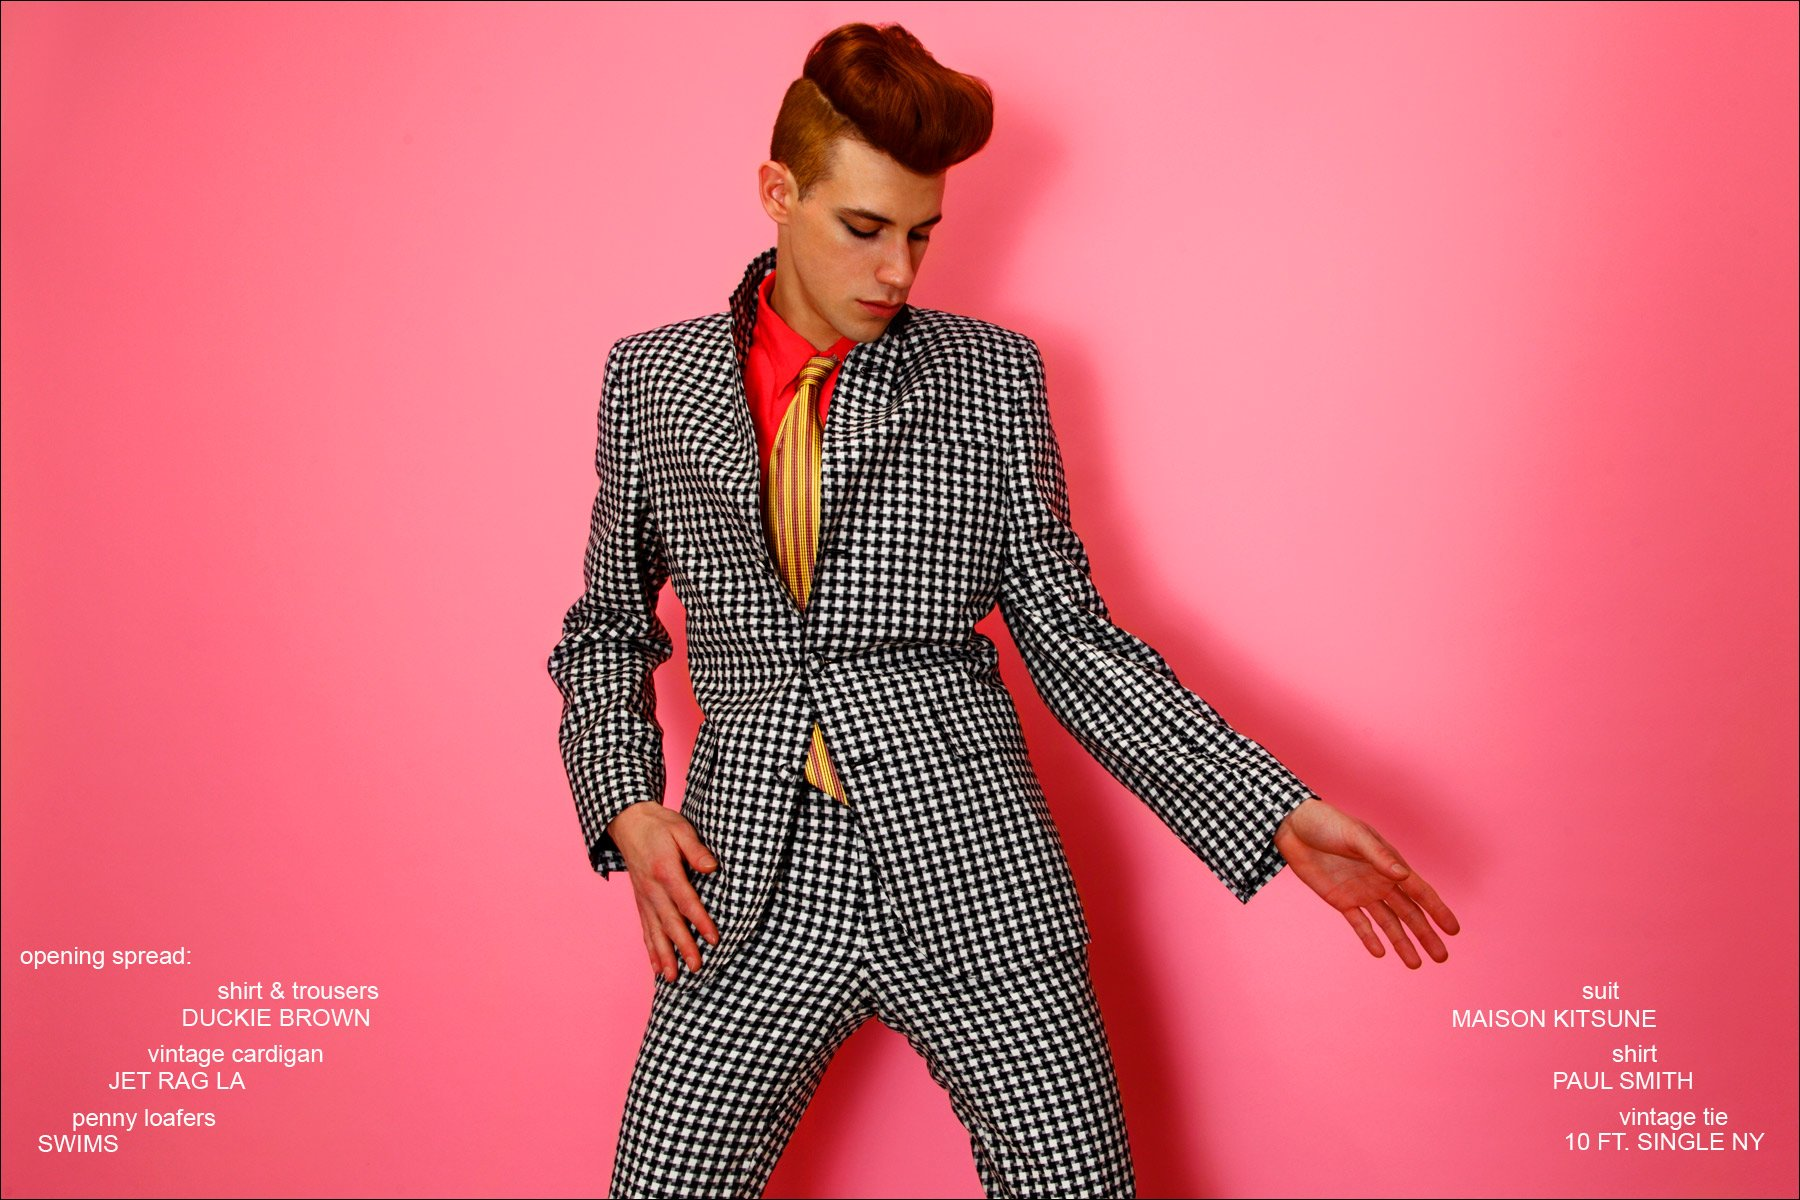 Model Lyle Lodwick wears a houndstooth suit by Maison Kitsune. Photographed by Alexander Thompson for Ponyboy magazine.